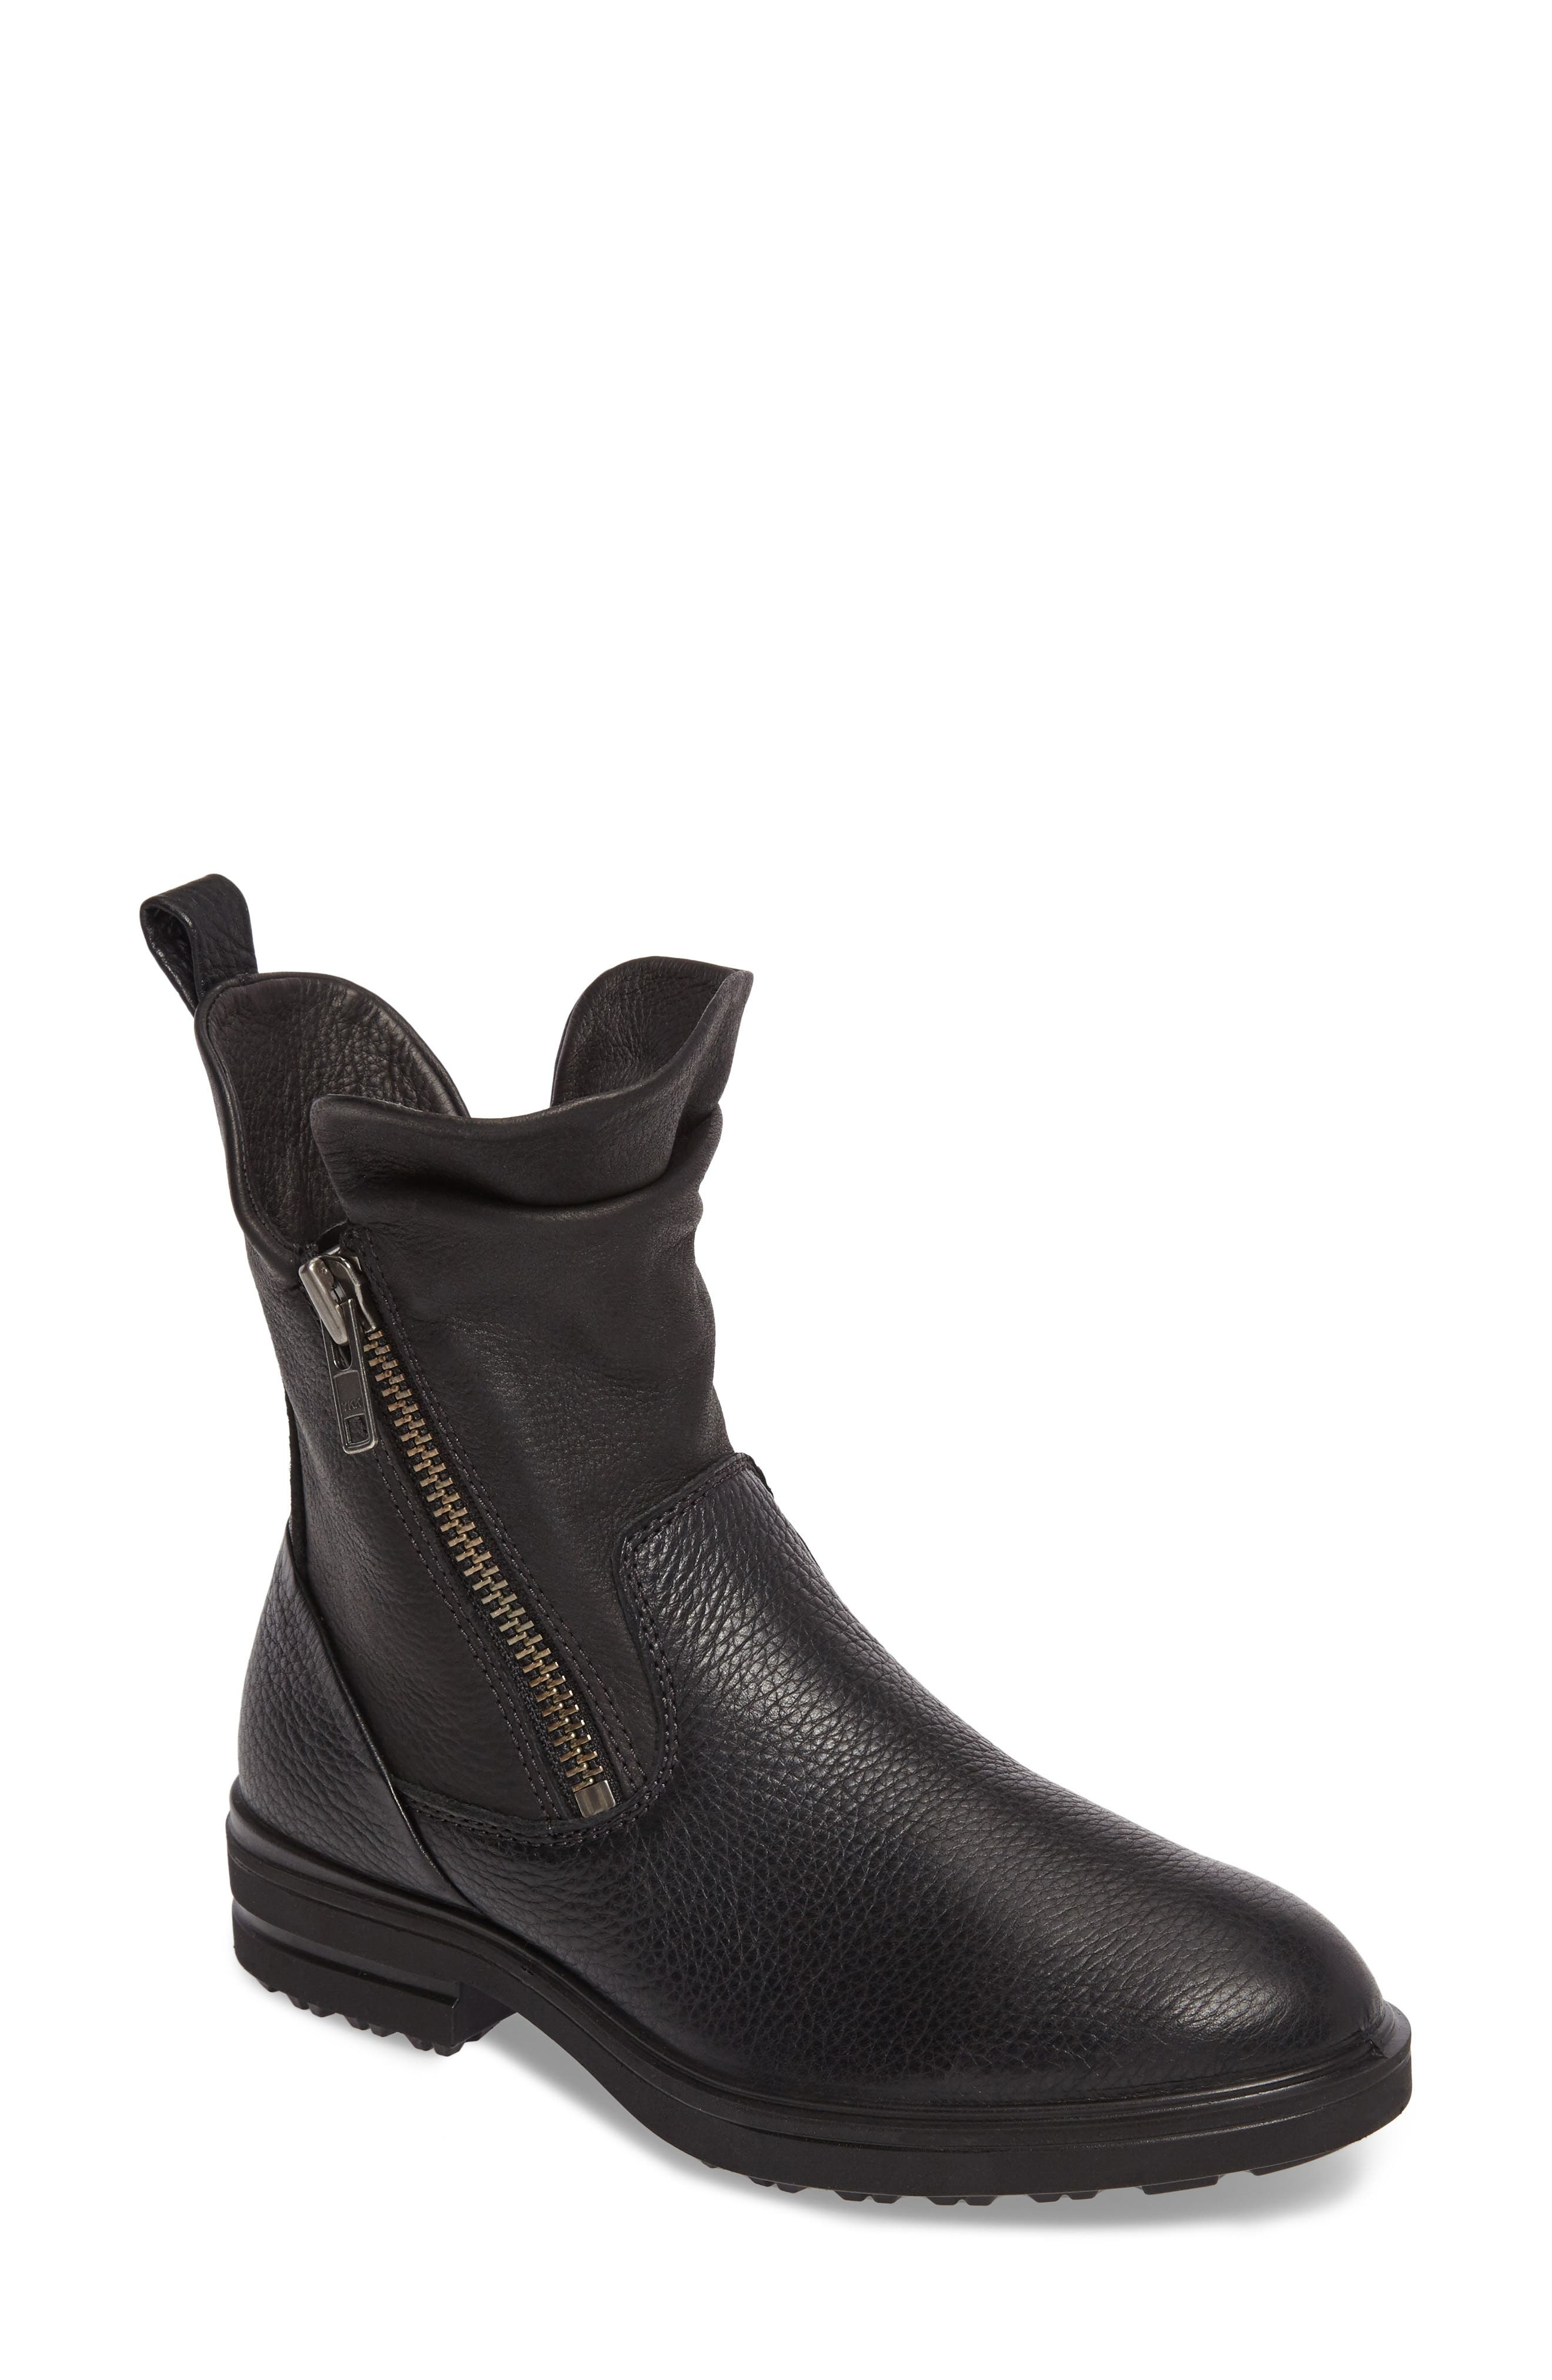 Zoe Mid Boot,                         Main,                         color, Black Leather